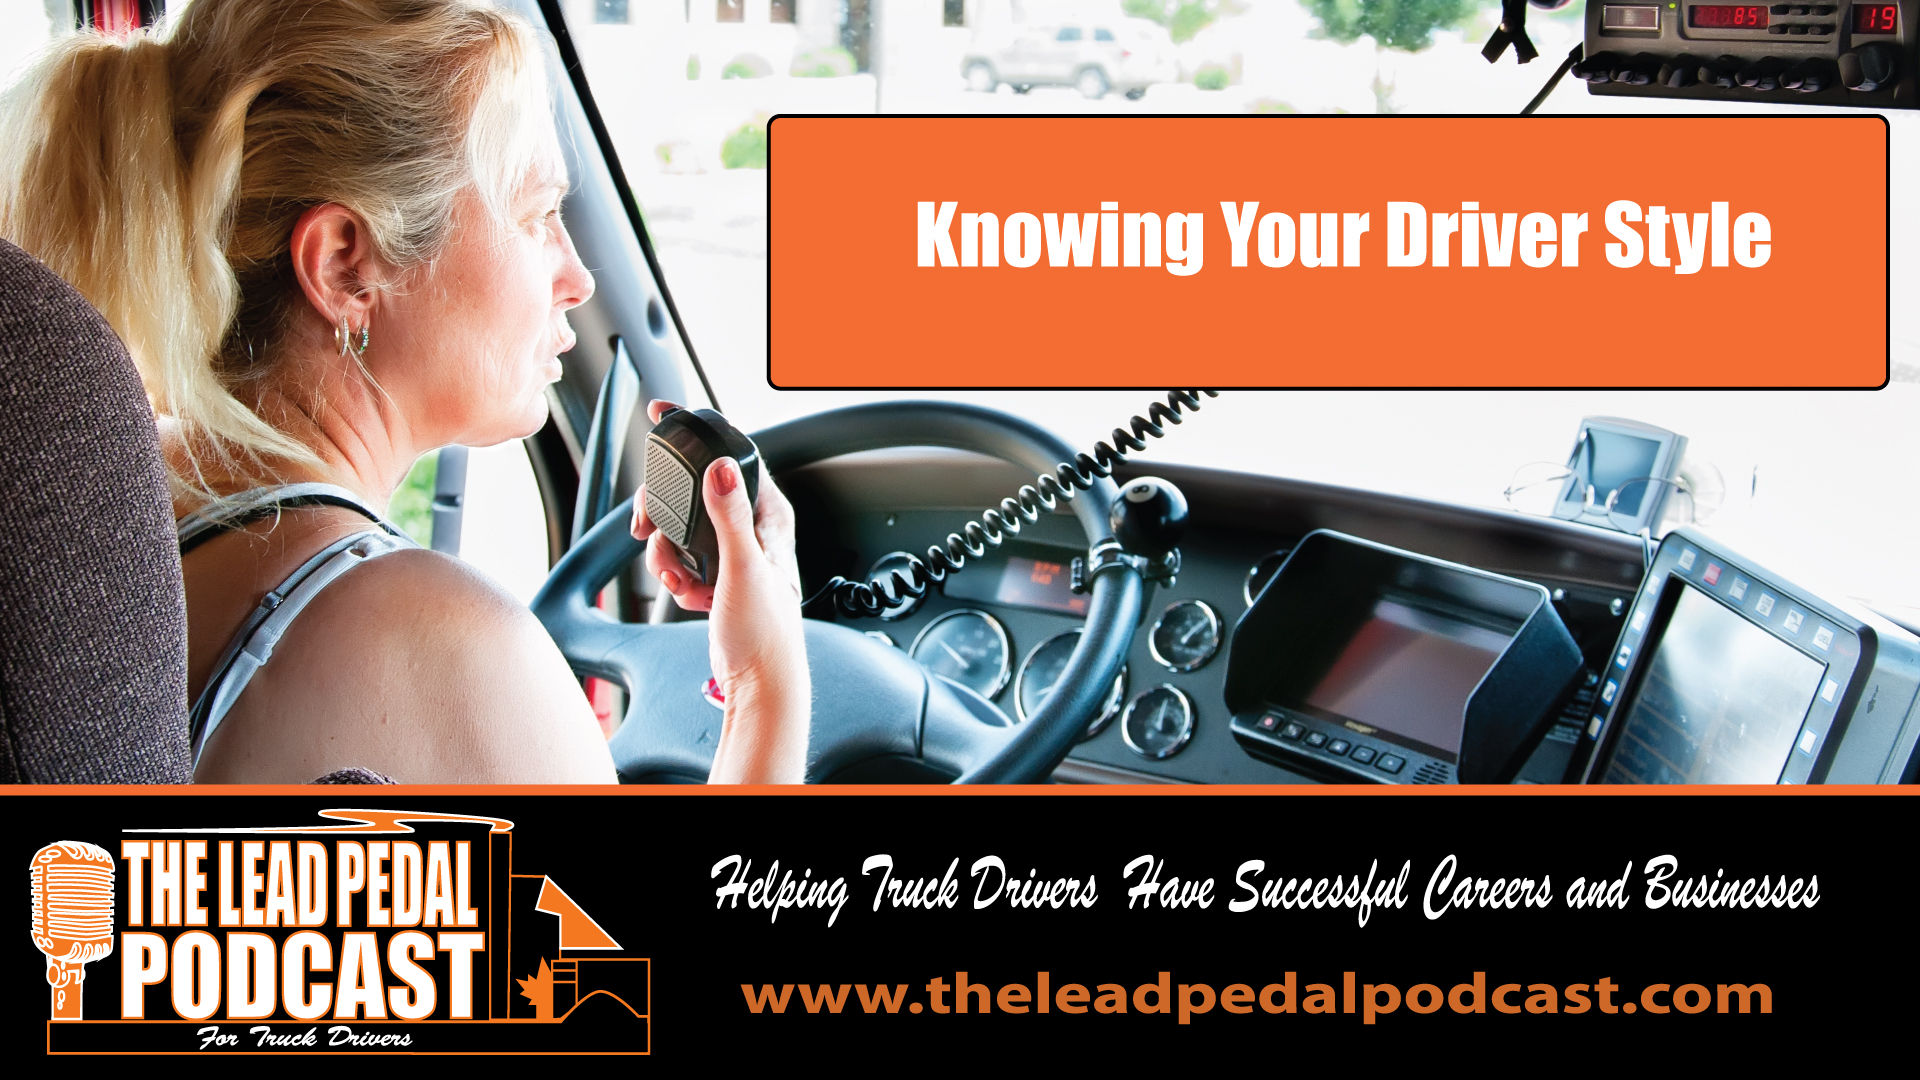 LP581 Does the Style of Driver You Are Determine Your Career Path?